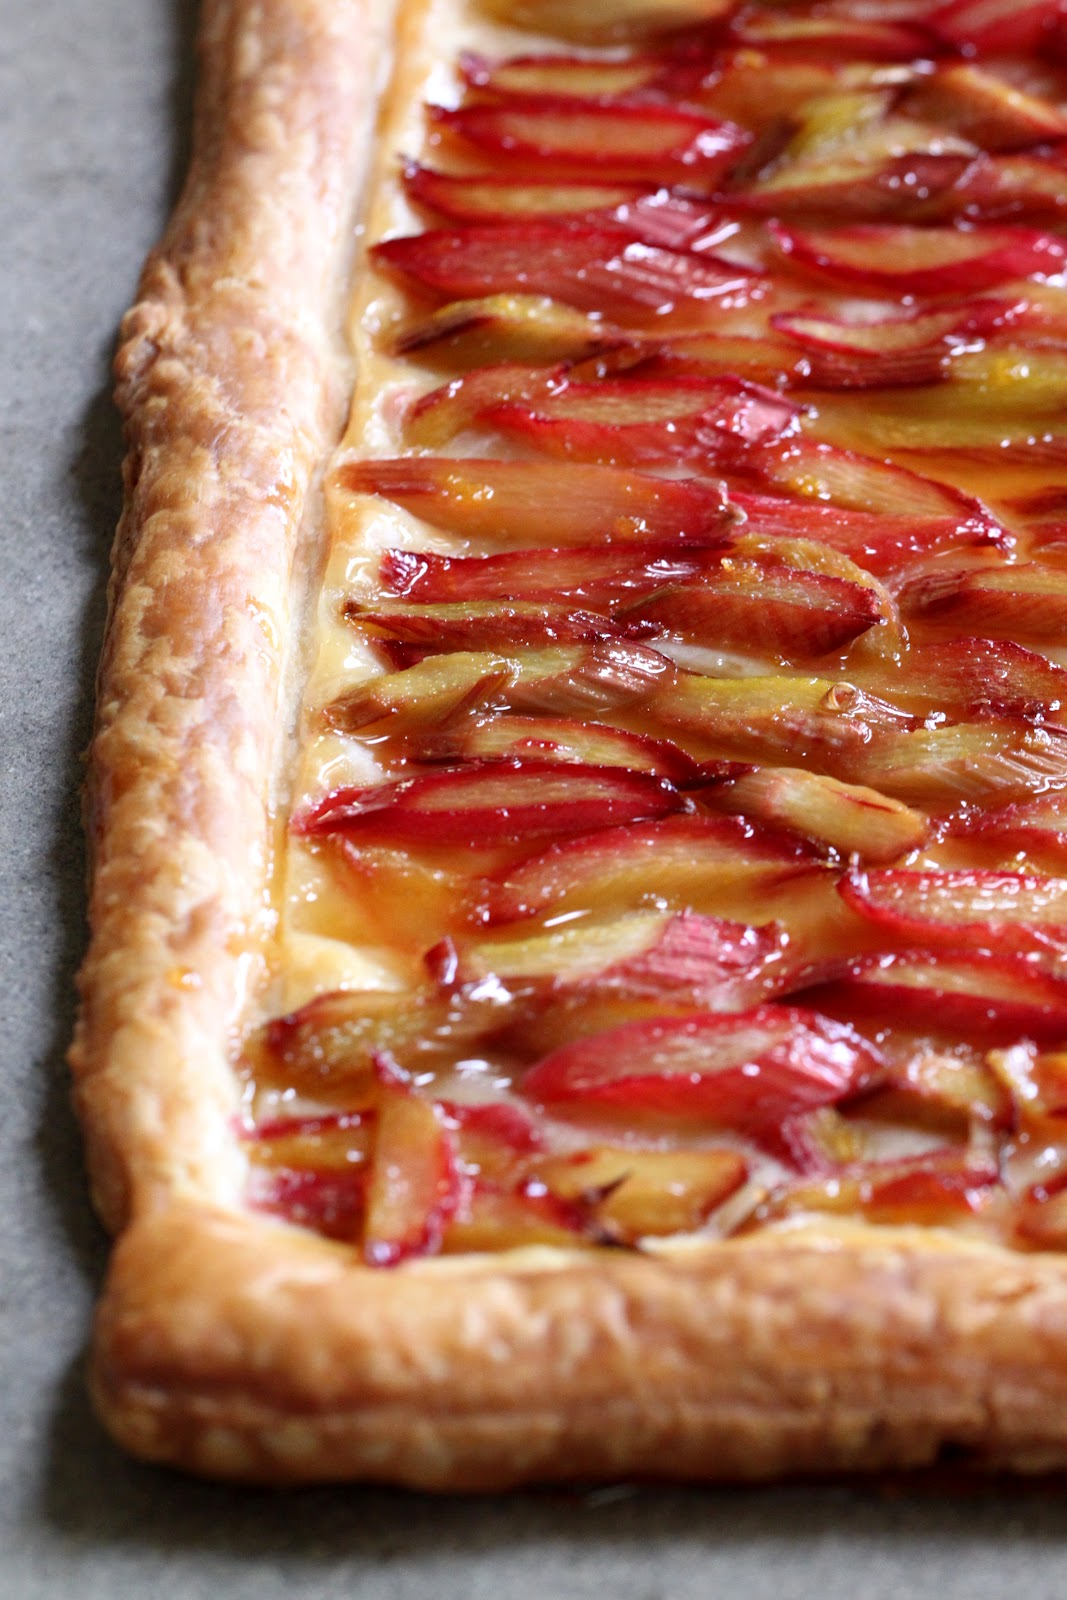 Badger Kitchen: Rhubarb Tart with Orange Glaze